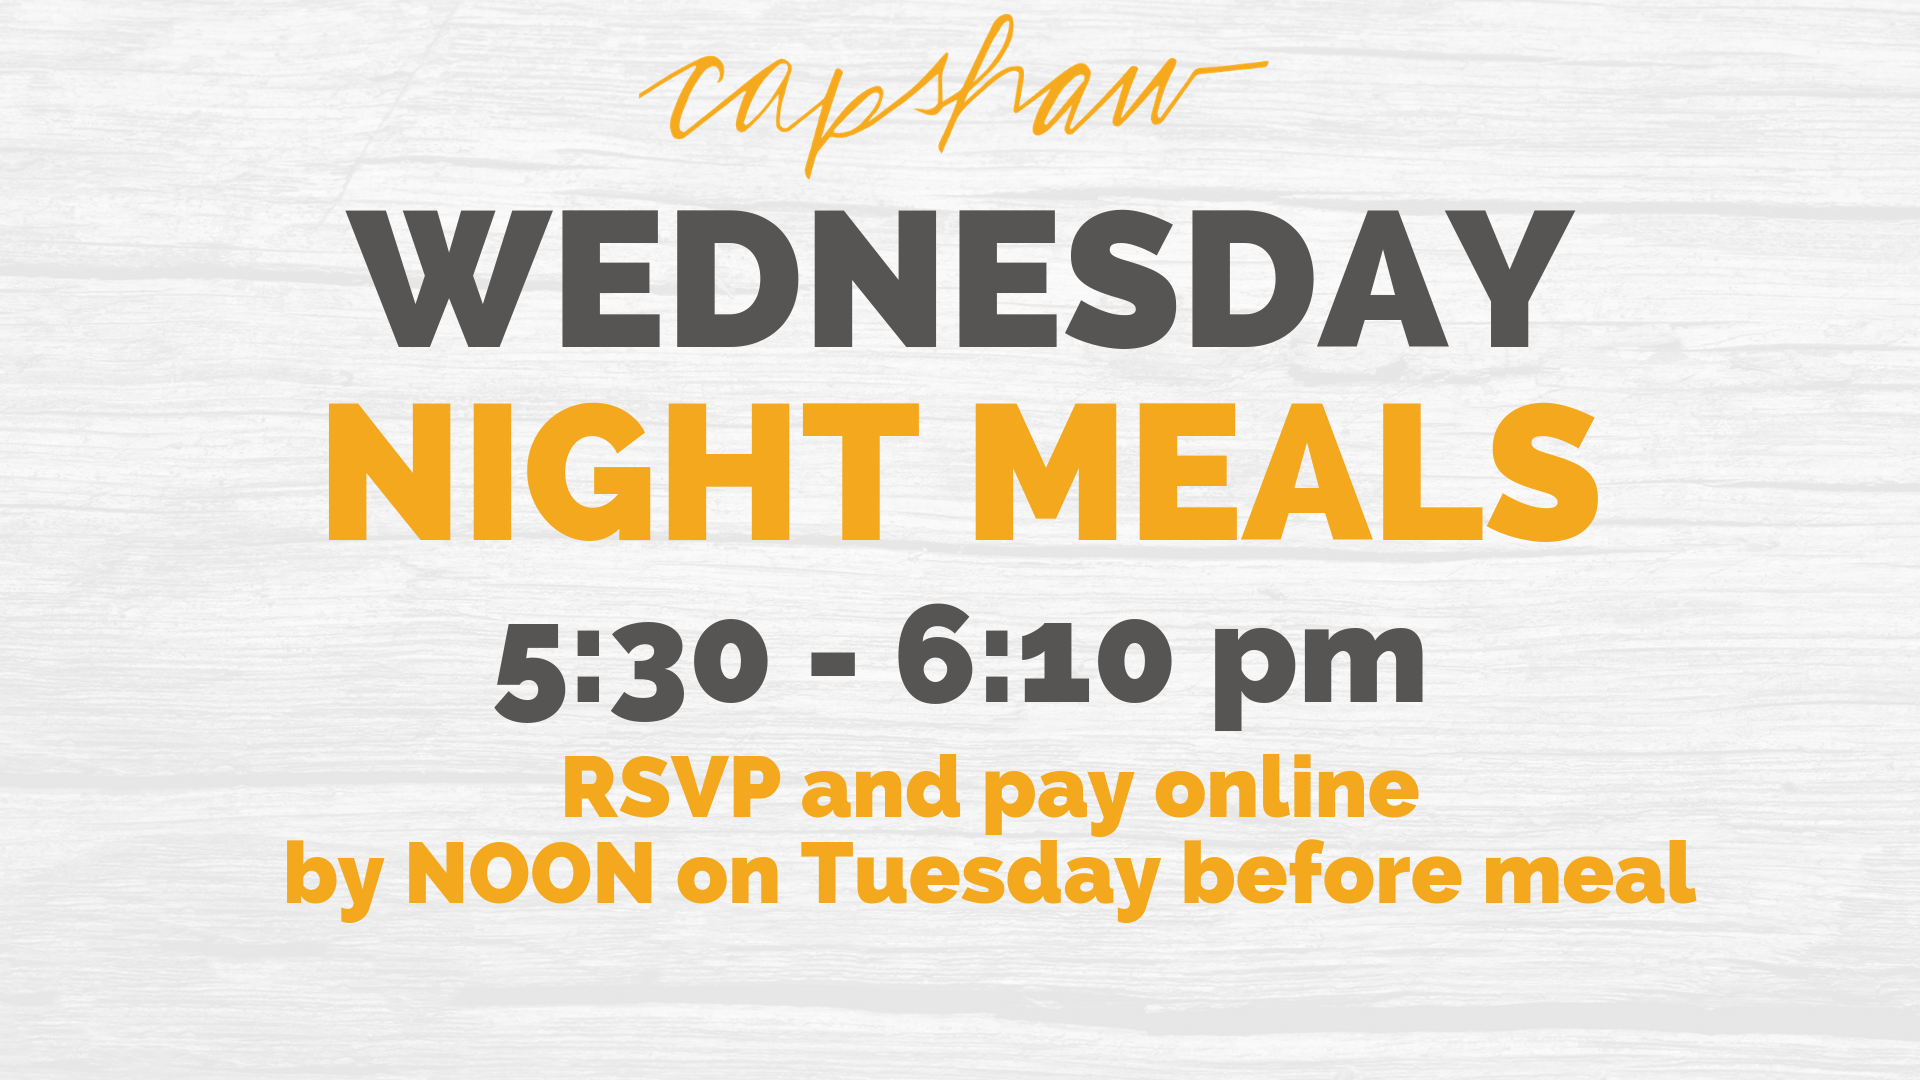 WEDNESDAY NIGHT MEALS (RSVP and pay online).png